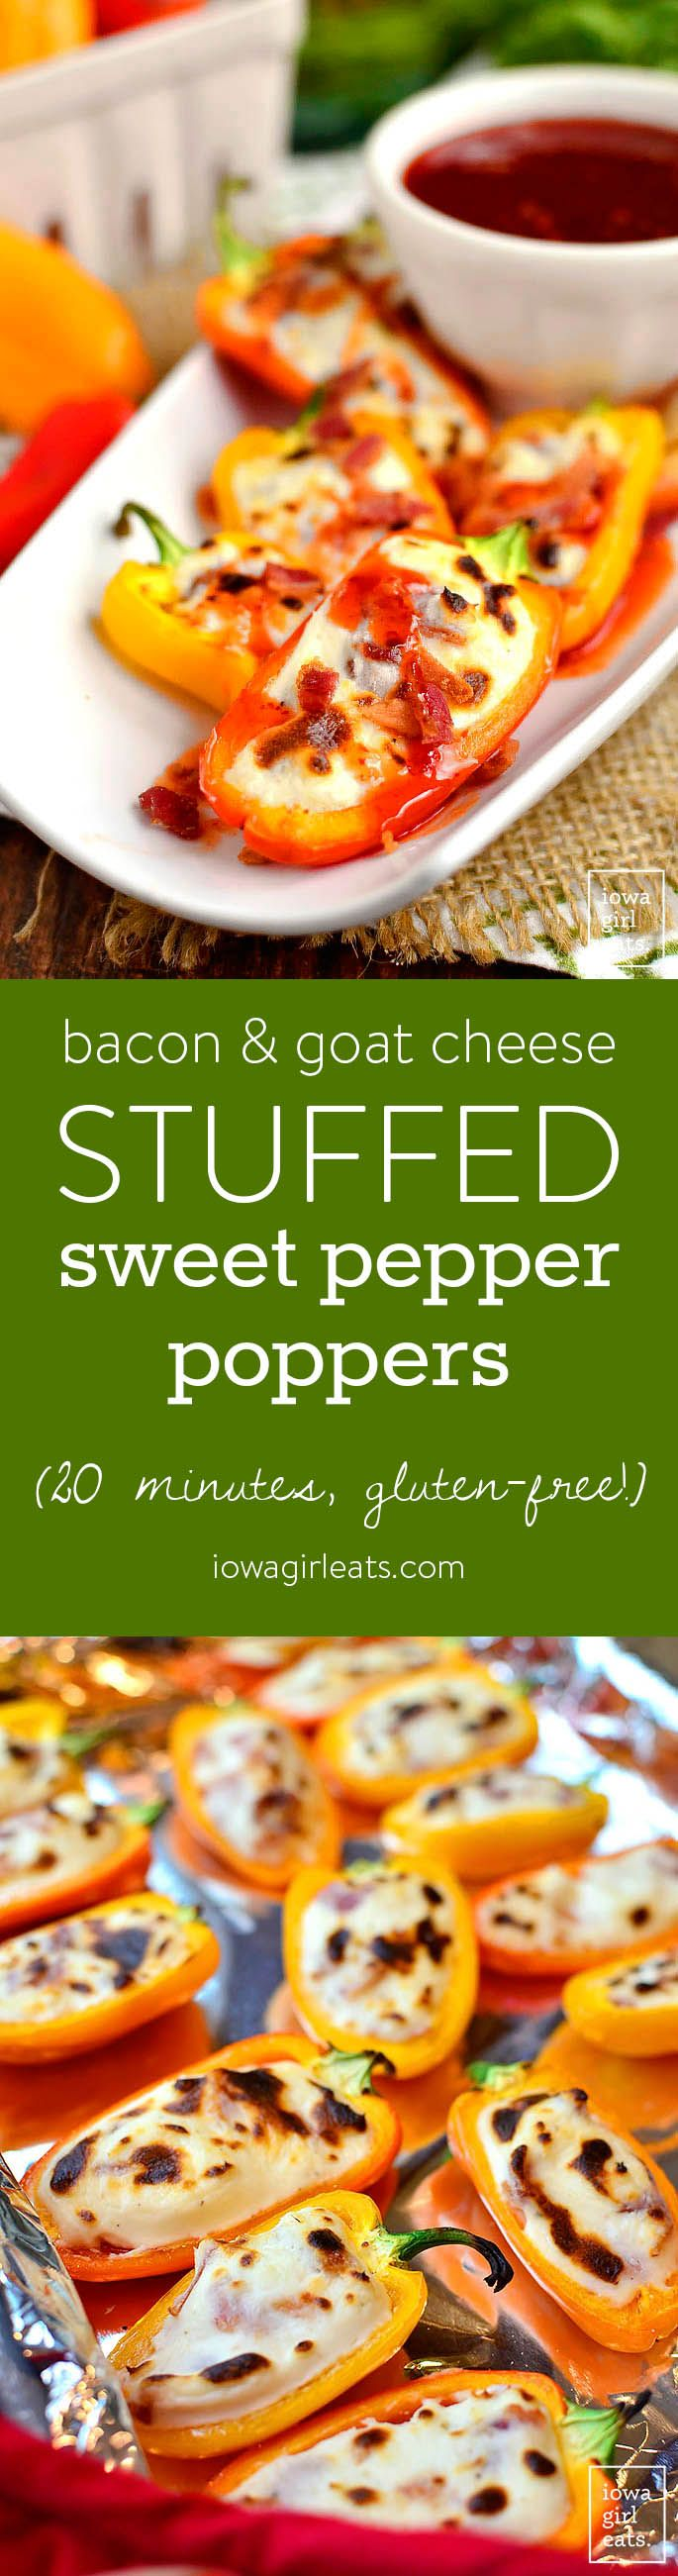 Bacon and Goat Cheese Stuffed Sweet Pepper Poppers | http://iowagirleats.com/